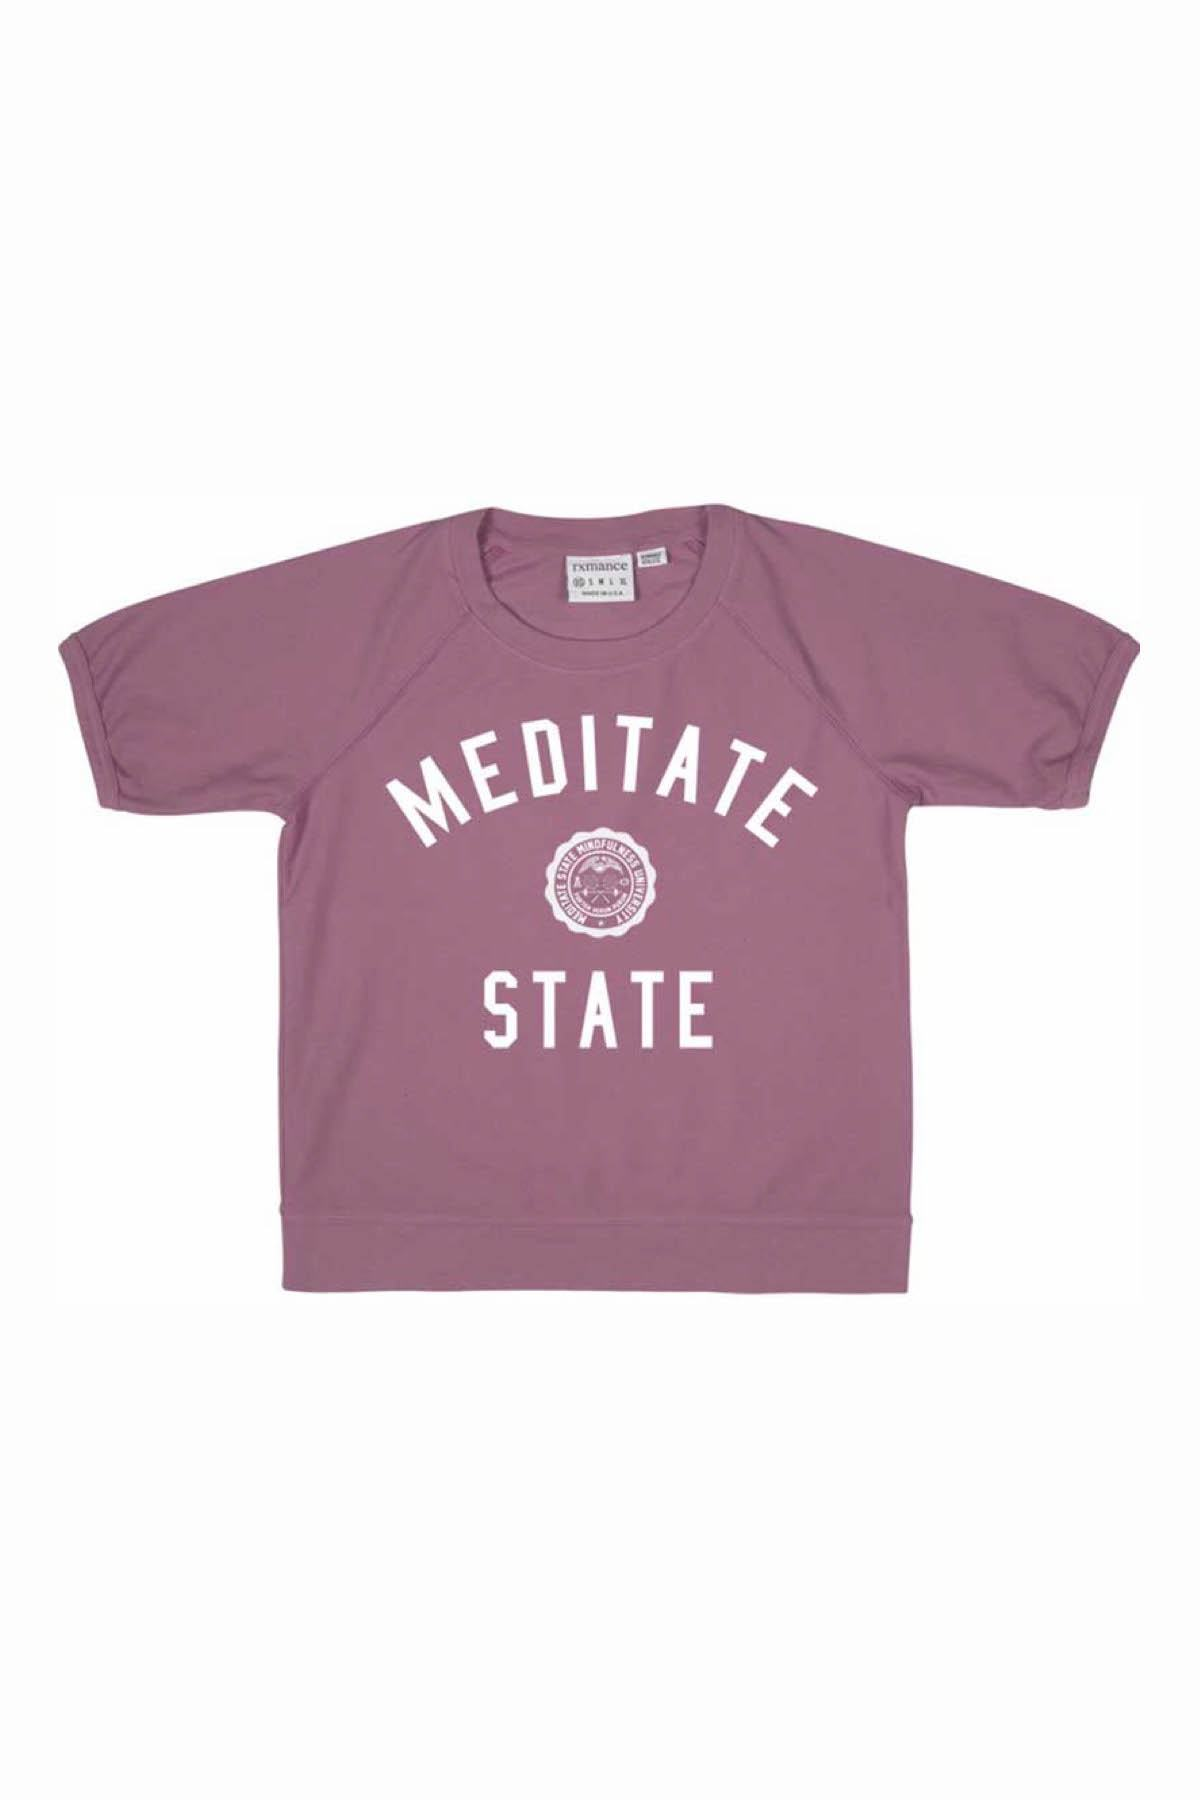 Rxmance Unisex Faded-Rose Meditate-State Loose-Knit Short-Sleeve Tee